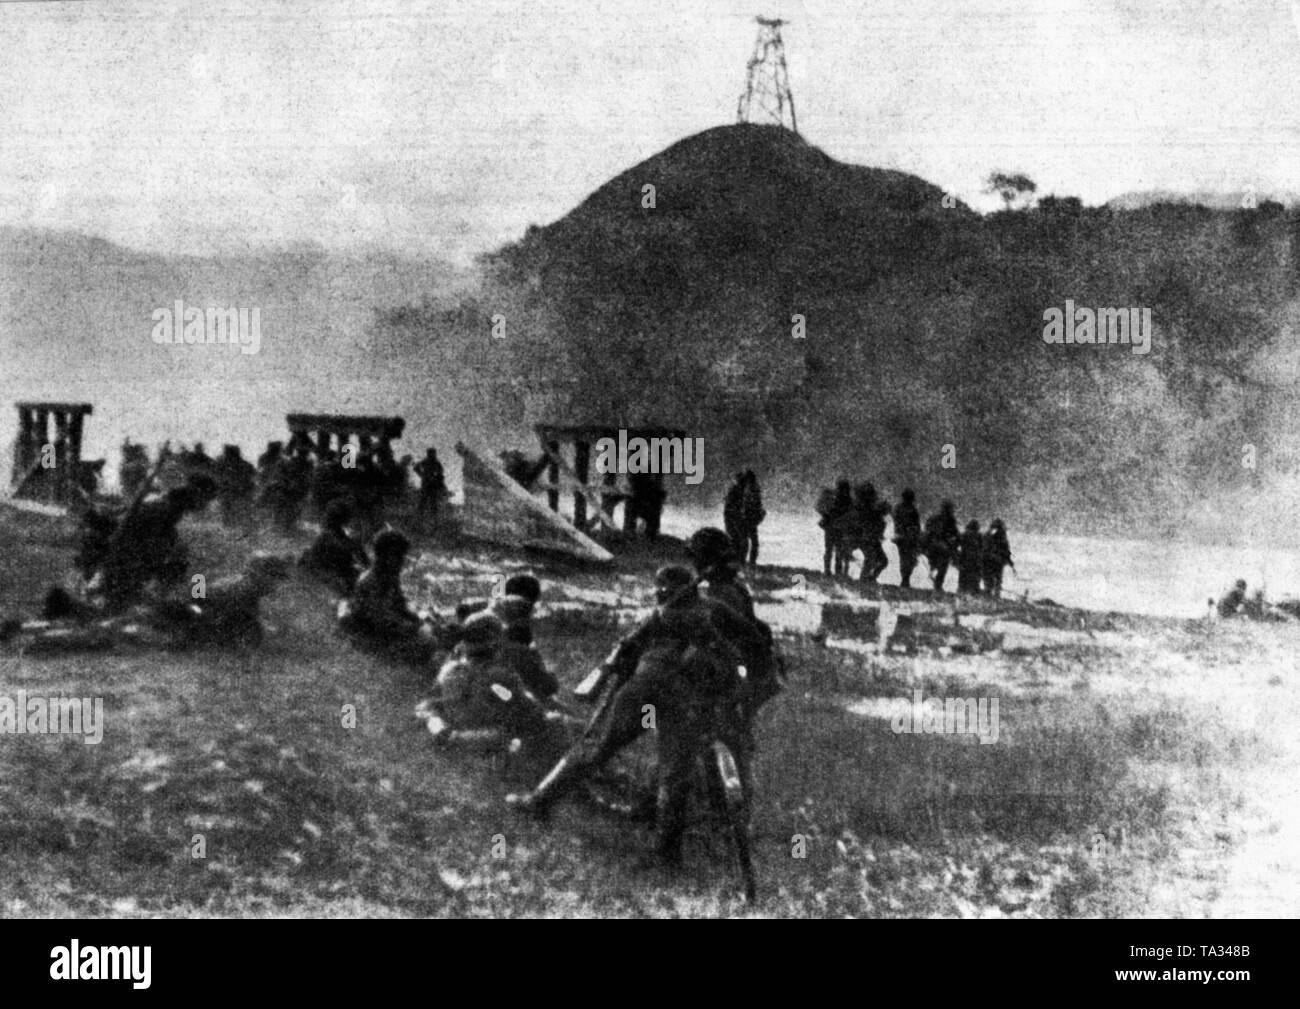 On the morning of 22nd06.1941, German pioneers are preparing to cross a border river. Stock Photo